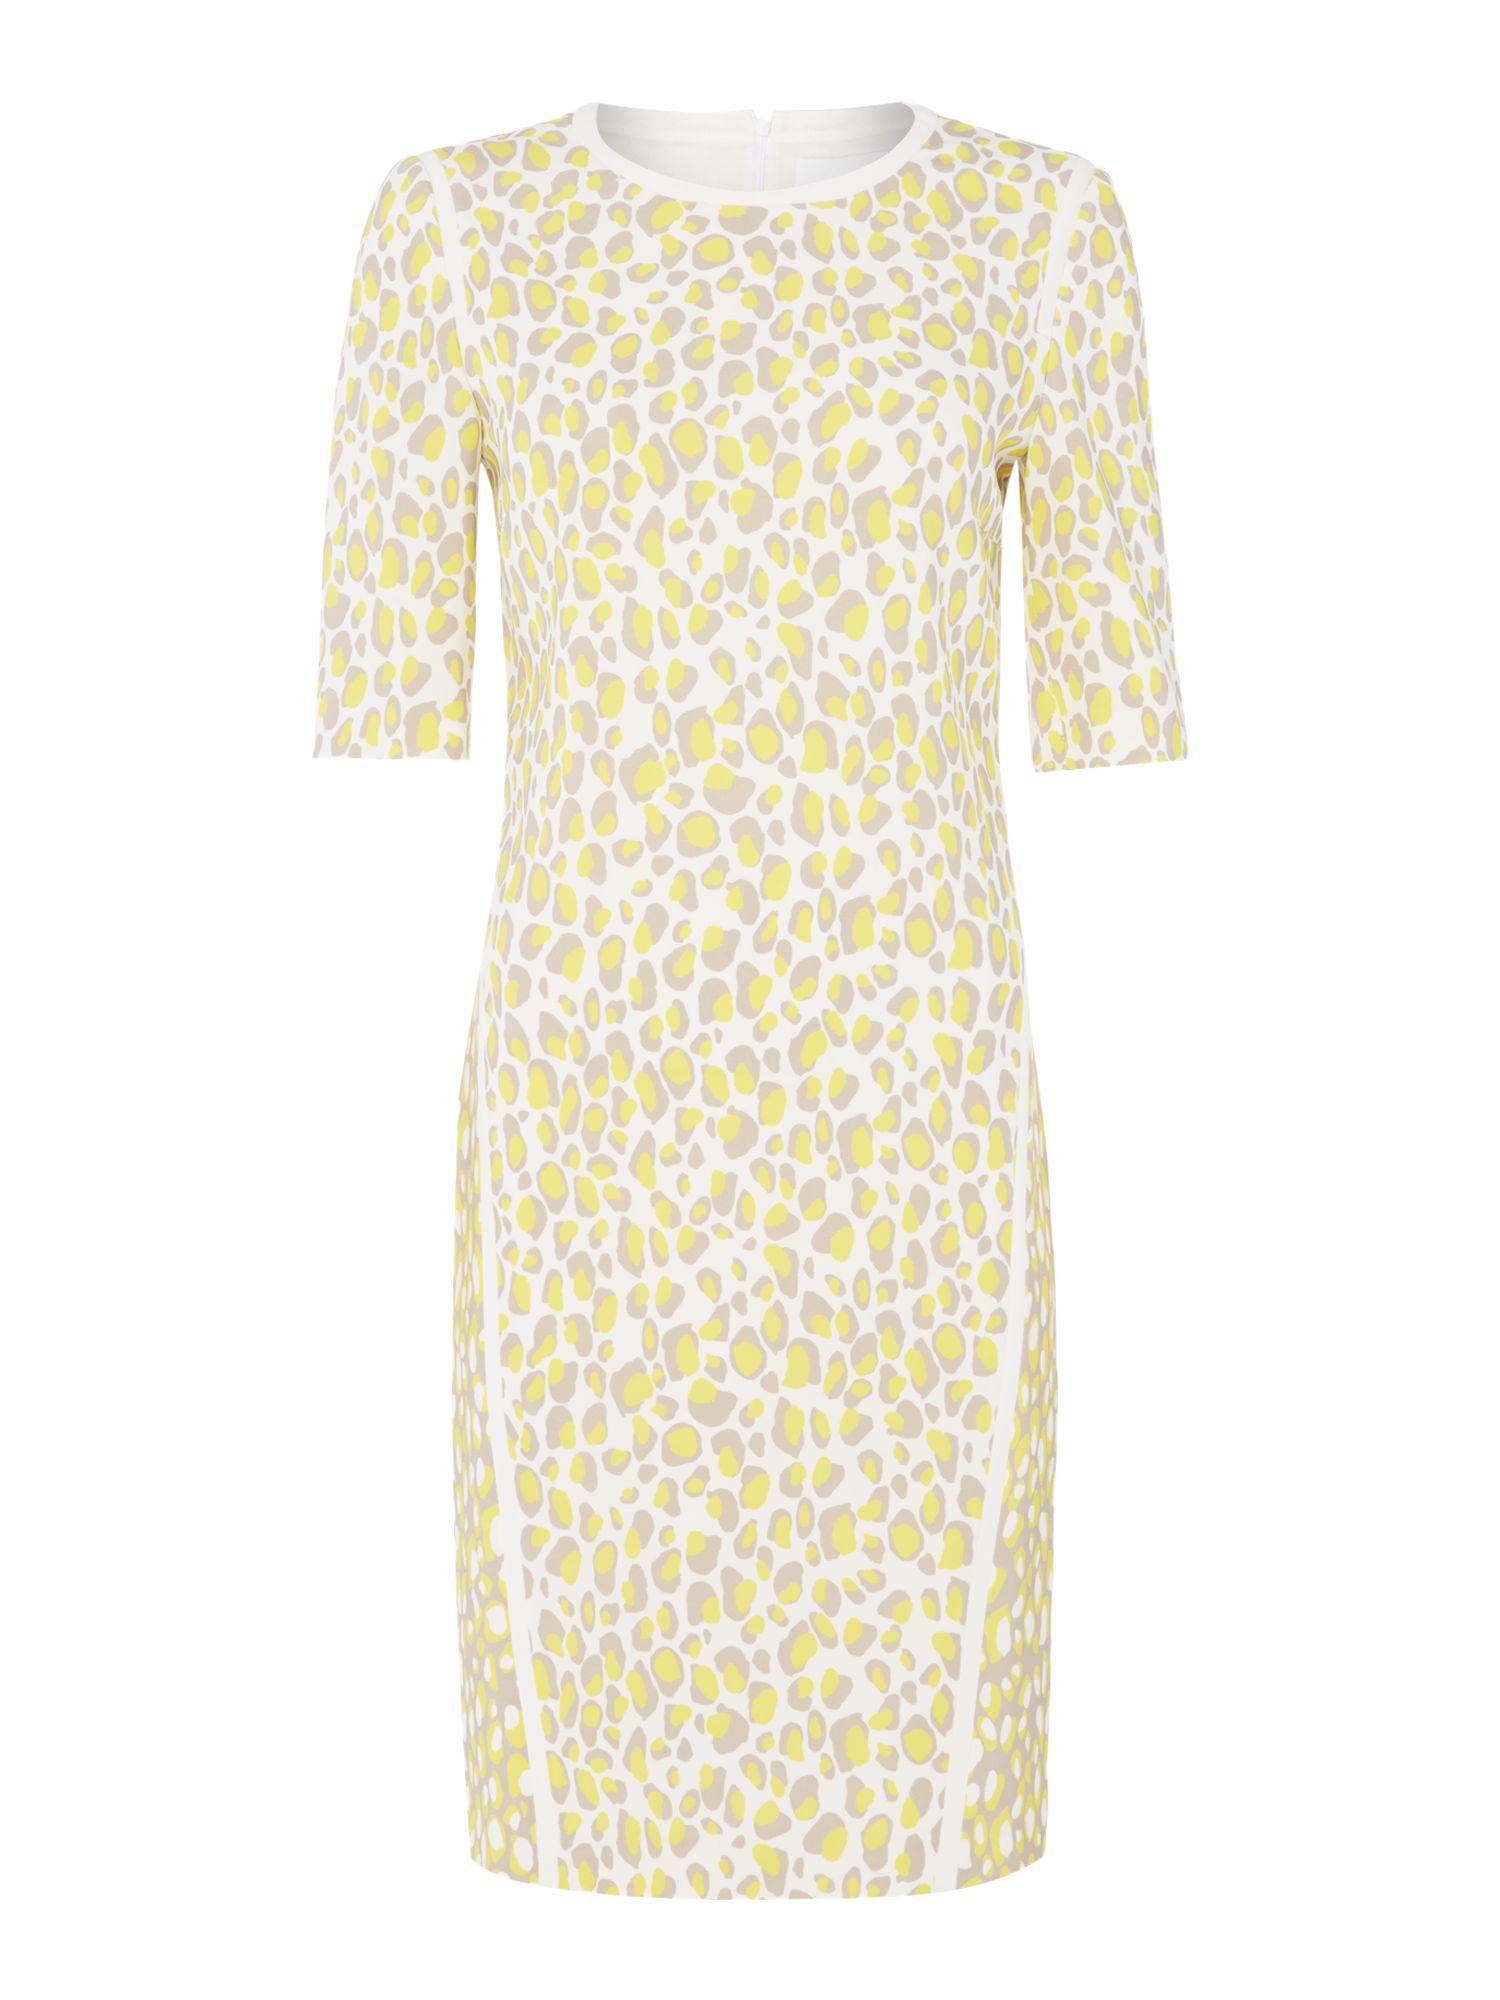 Hugo Boss Desima leopard dress, Multi-Coloured